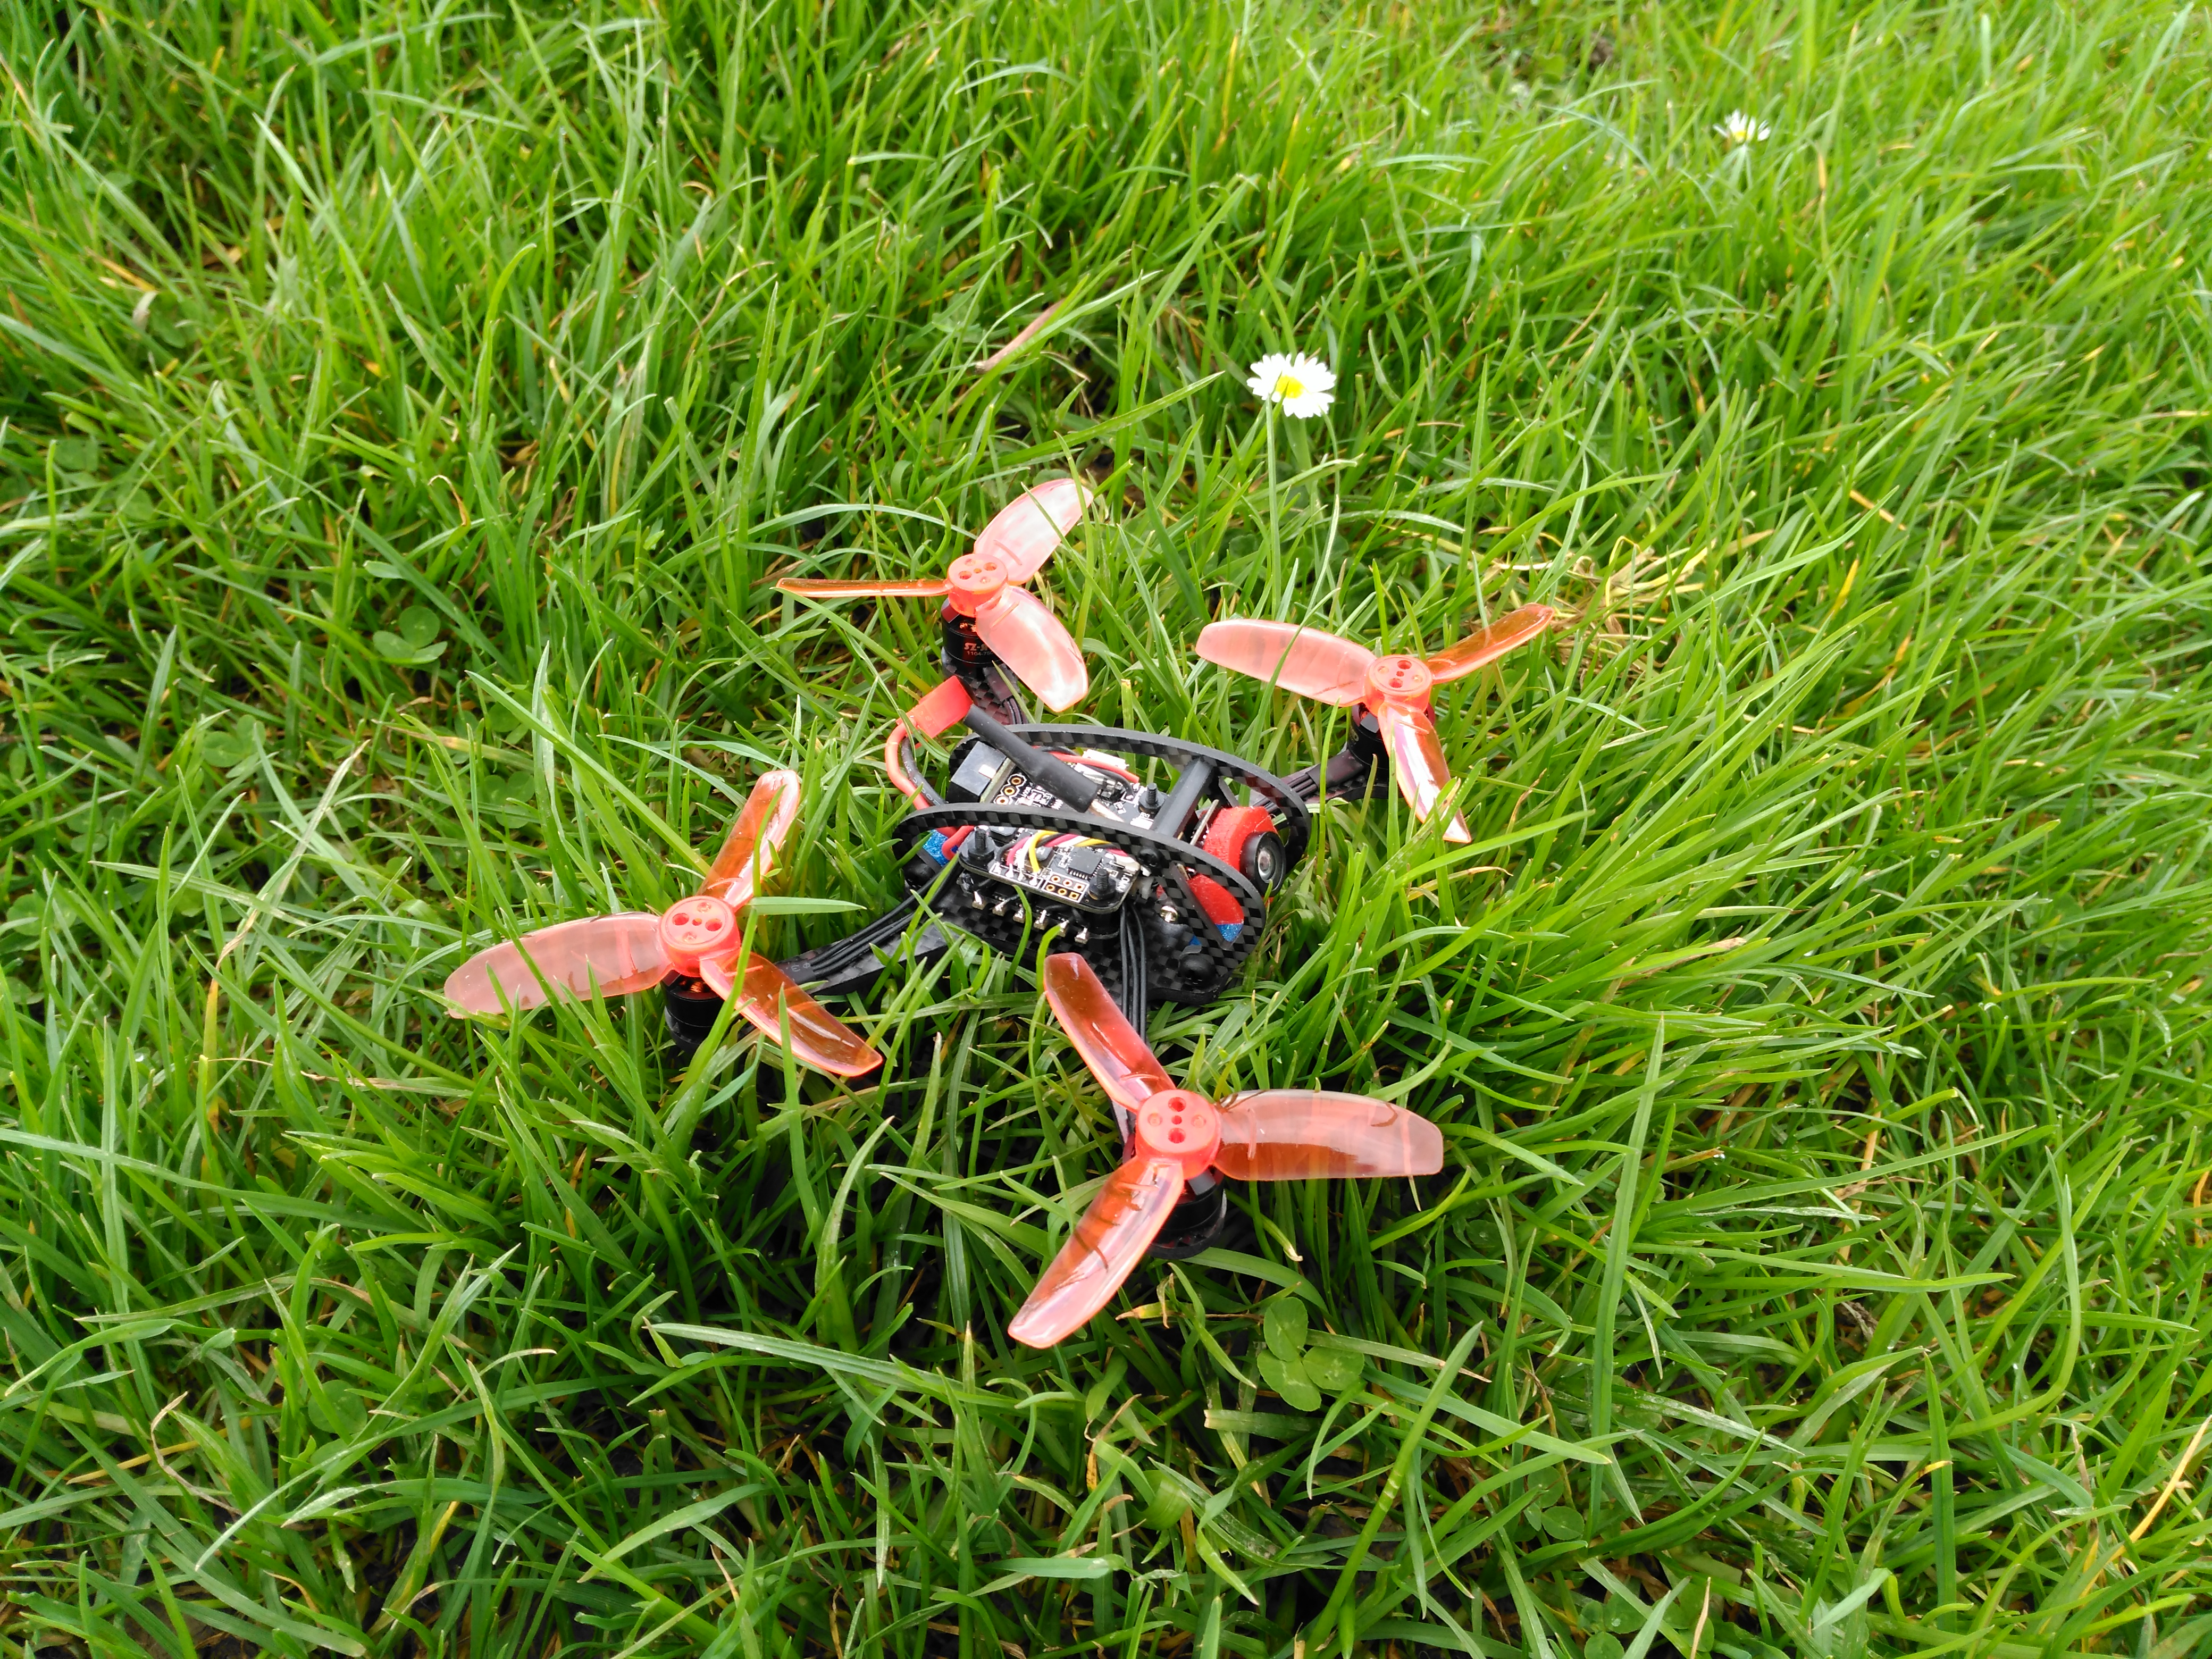 Leader-120 FPV Quadcopter Review:  Small and Agile 👍